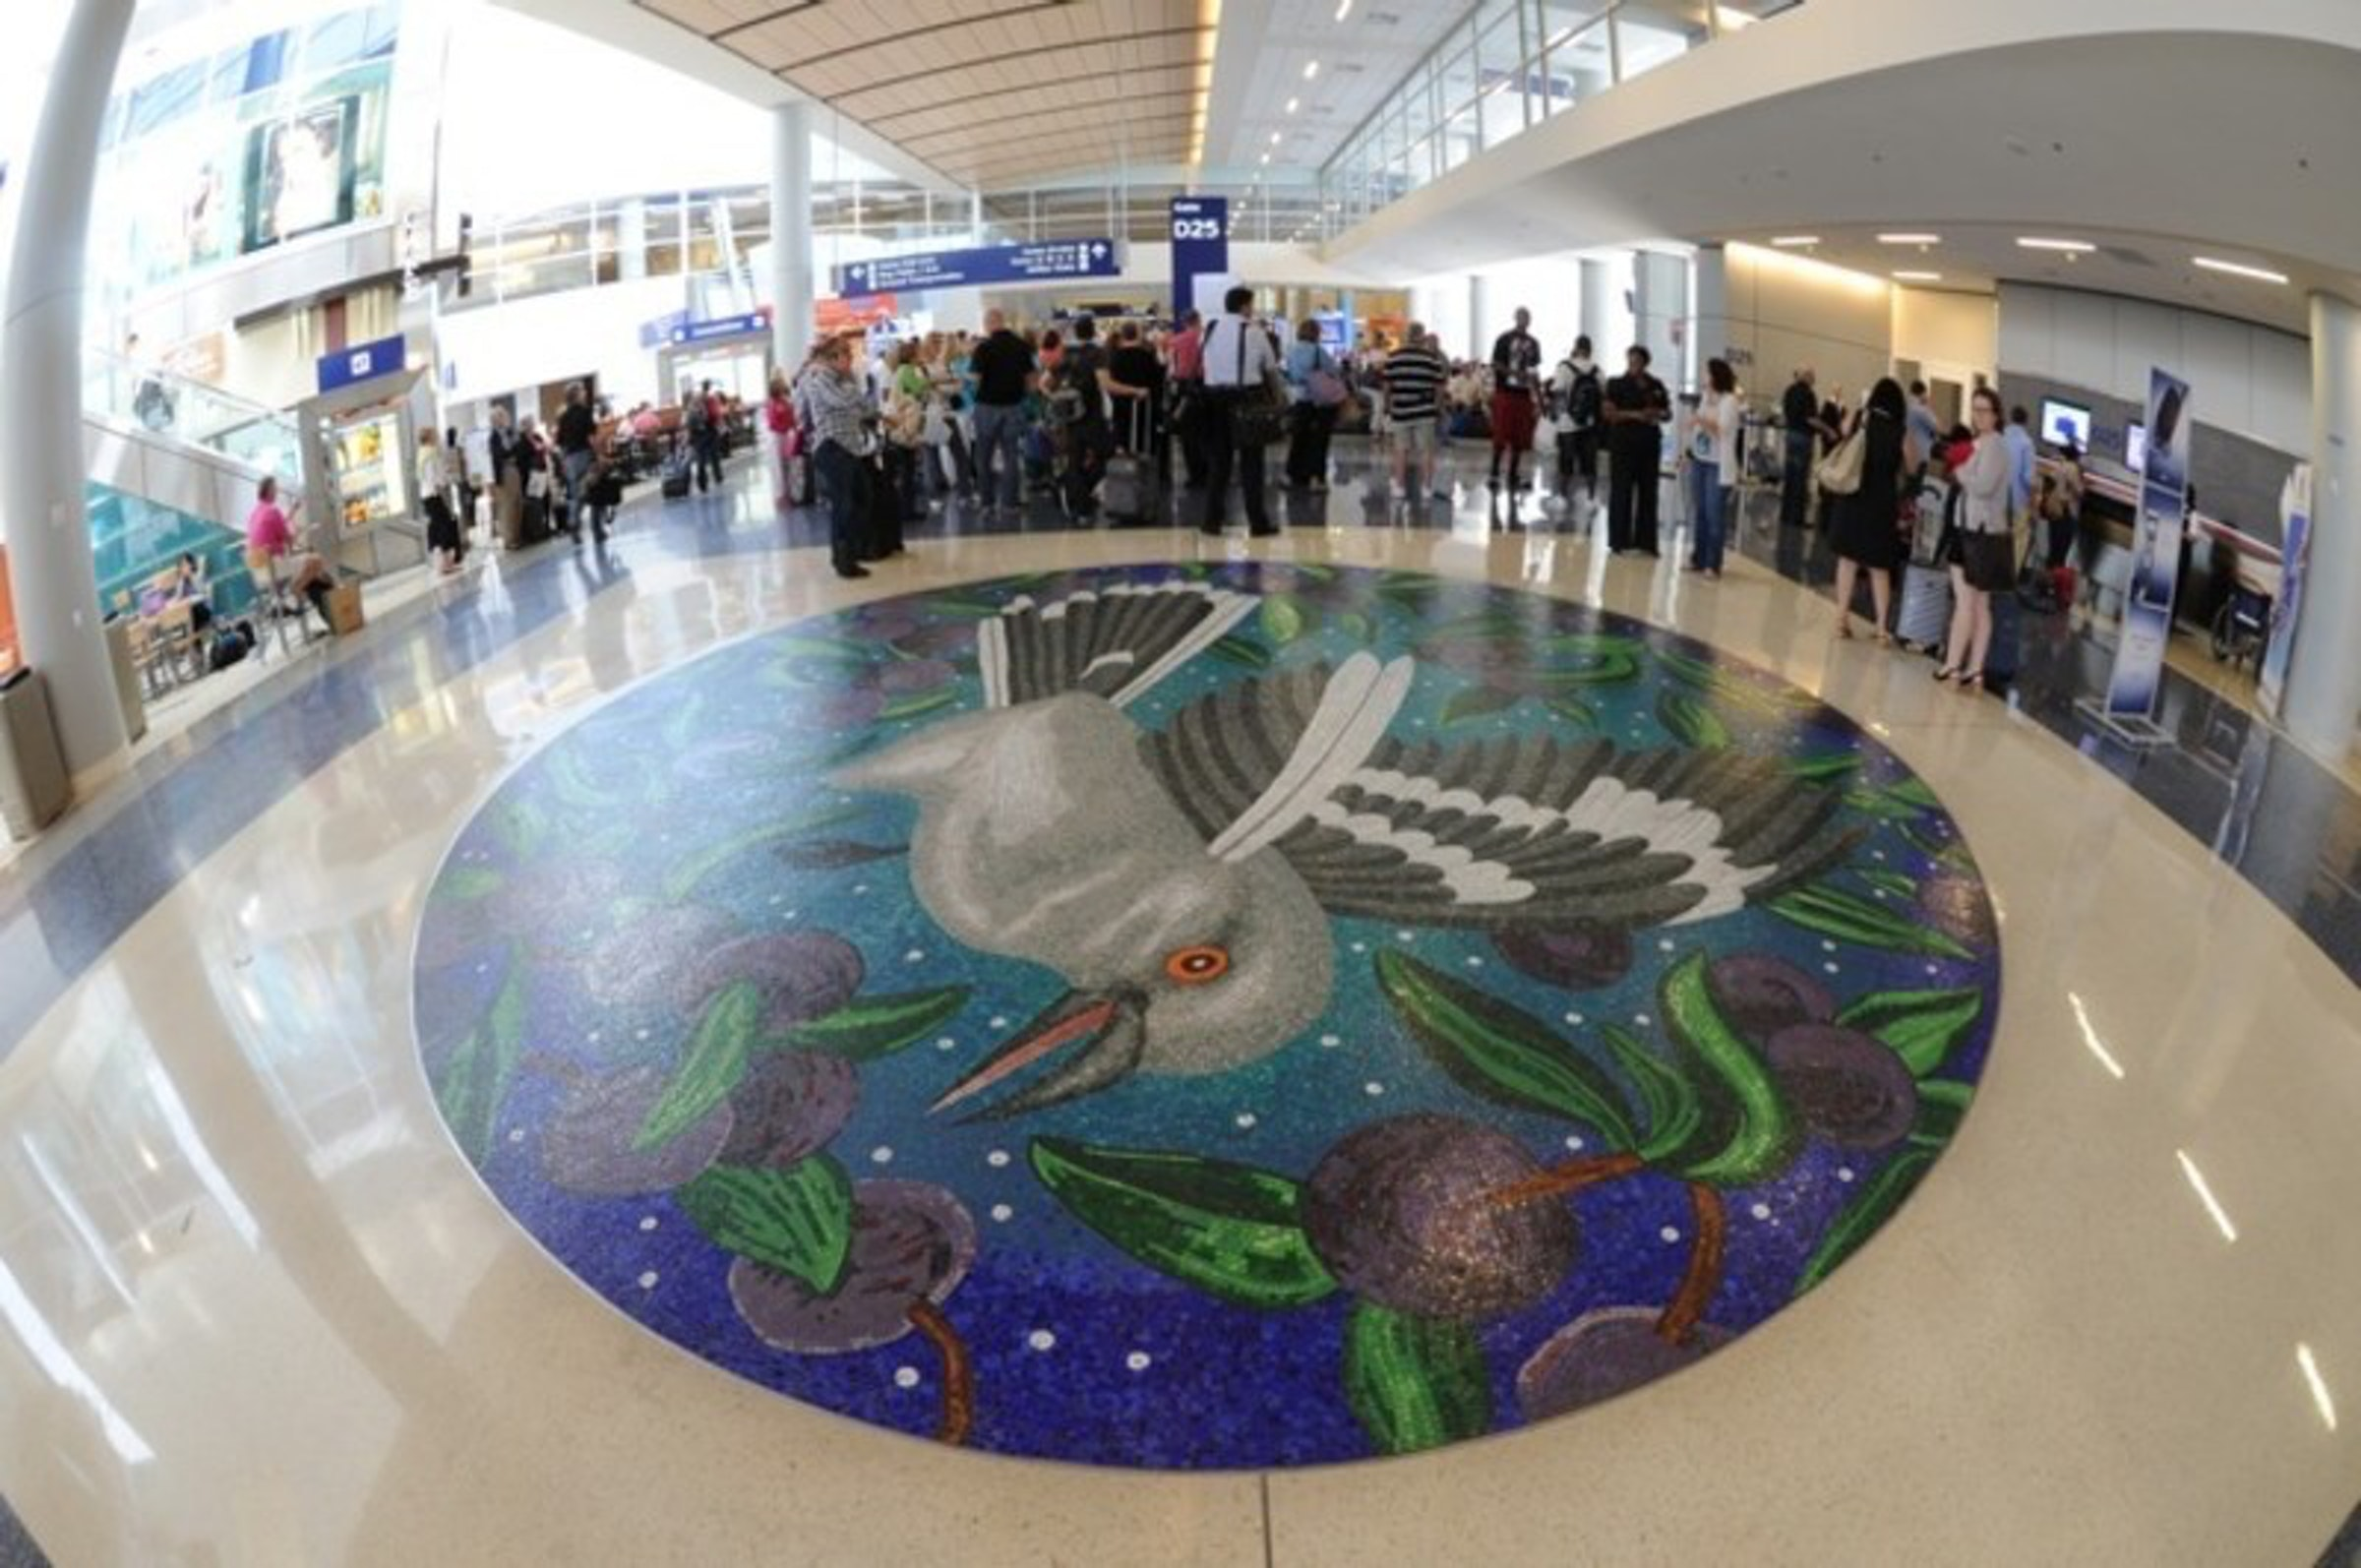 Dallas/Fort Worth International Airport in Beyond Dallas